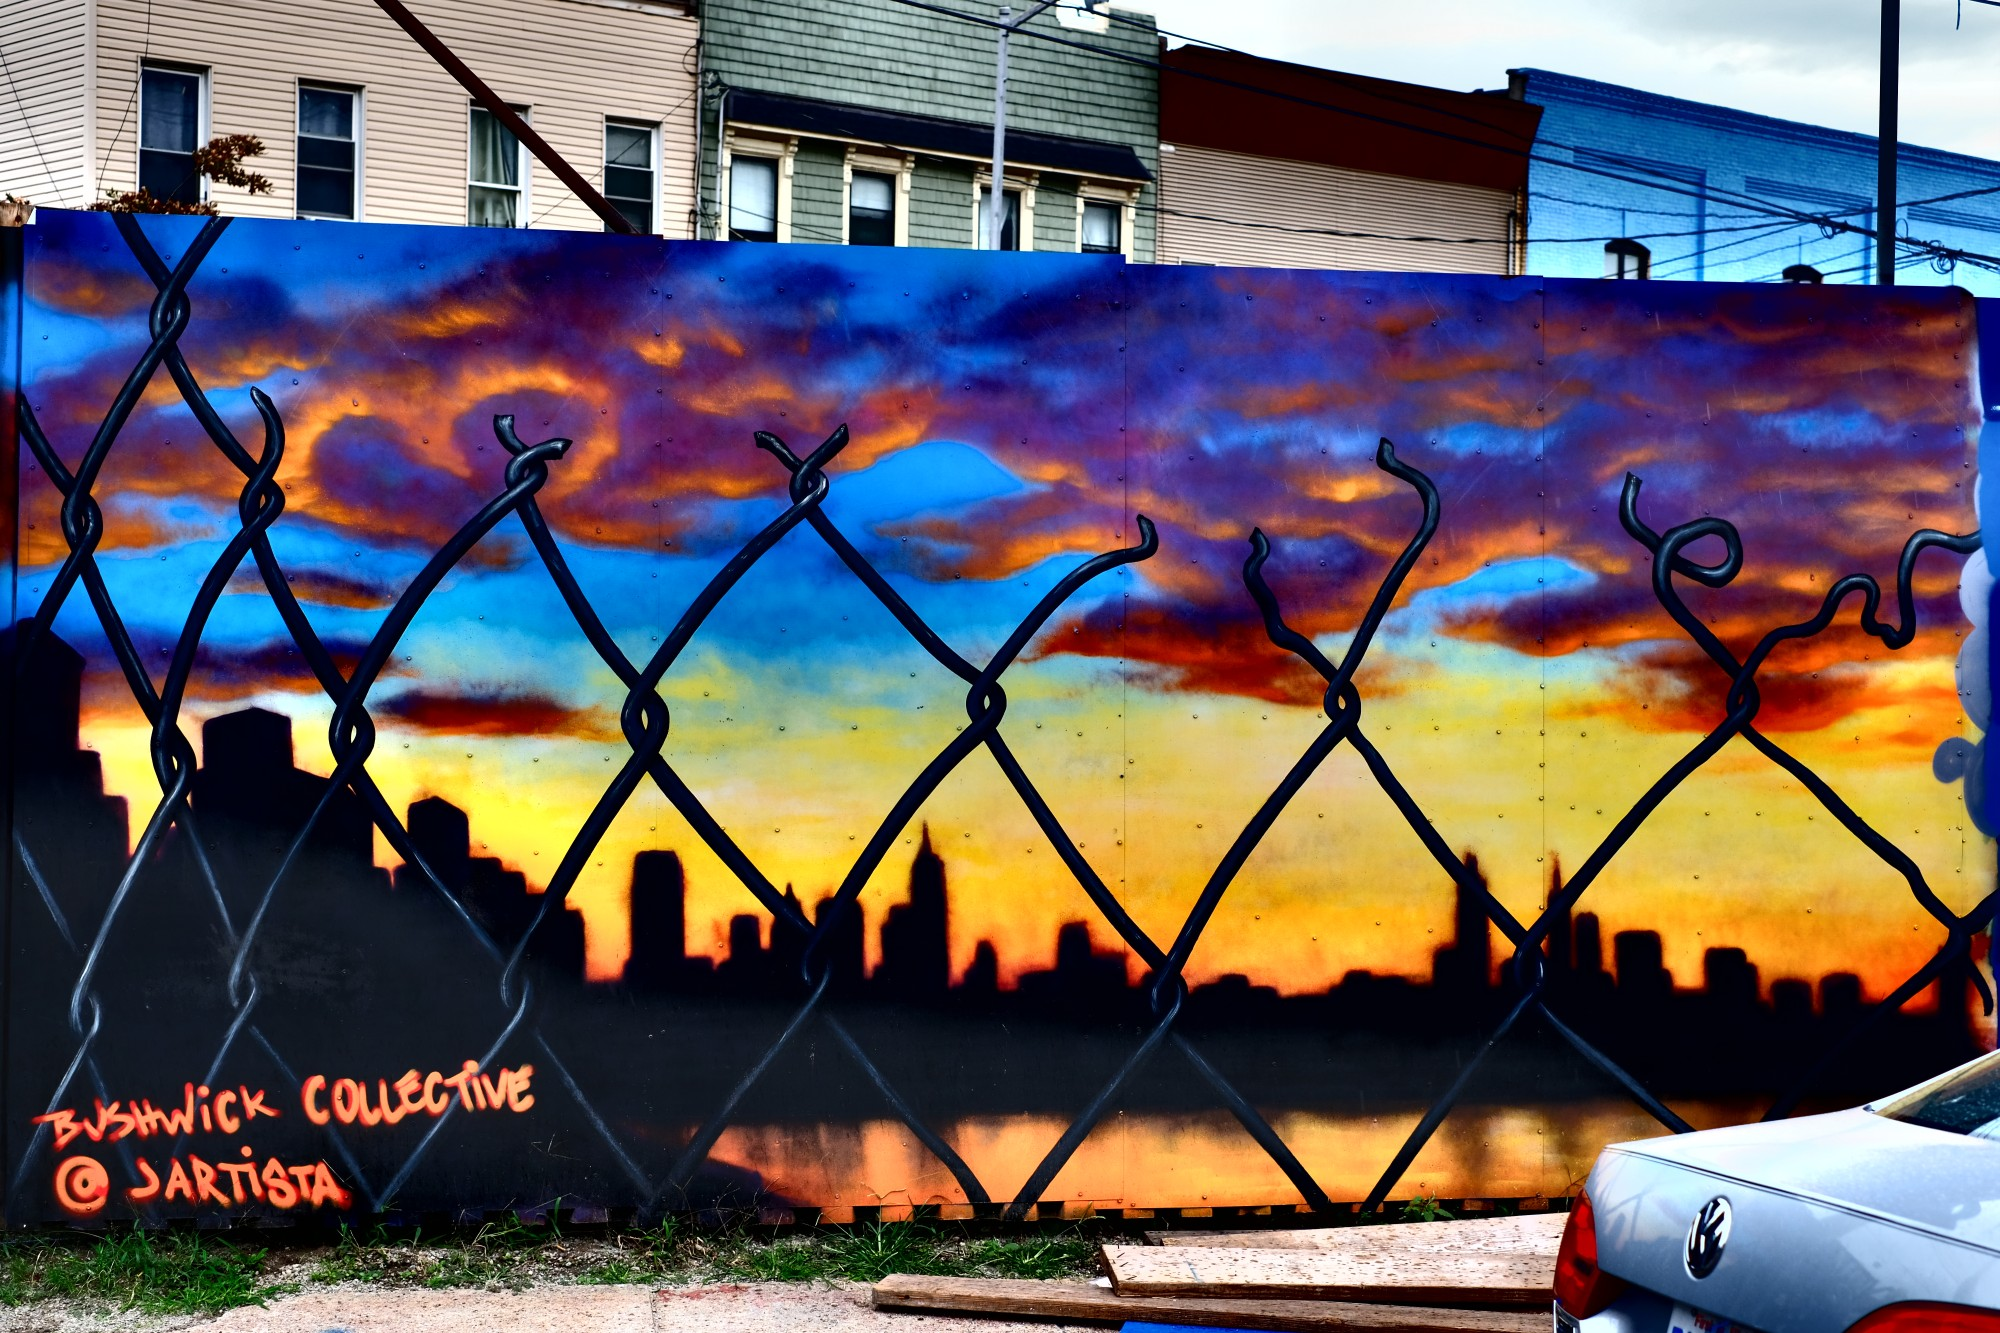 Manhattan skyline at sunset, through chain-link fence